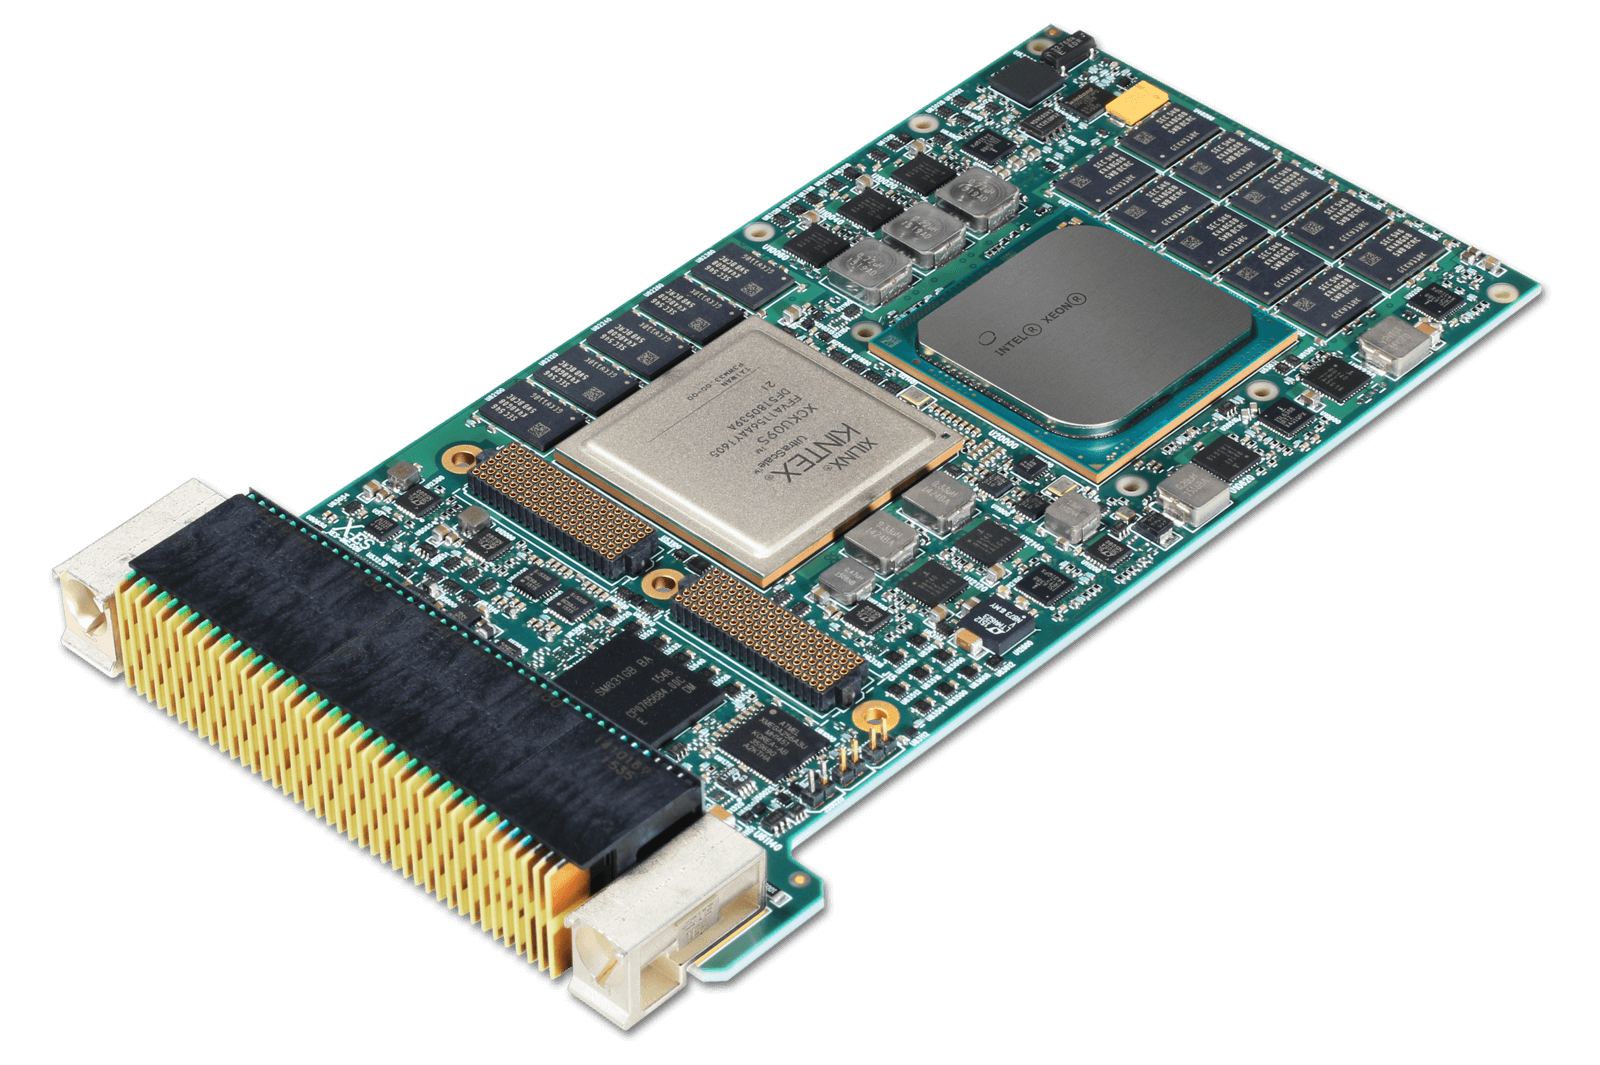 XPedite7674 3U VPX Single Board Computer (SBC)